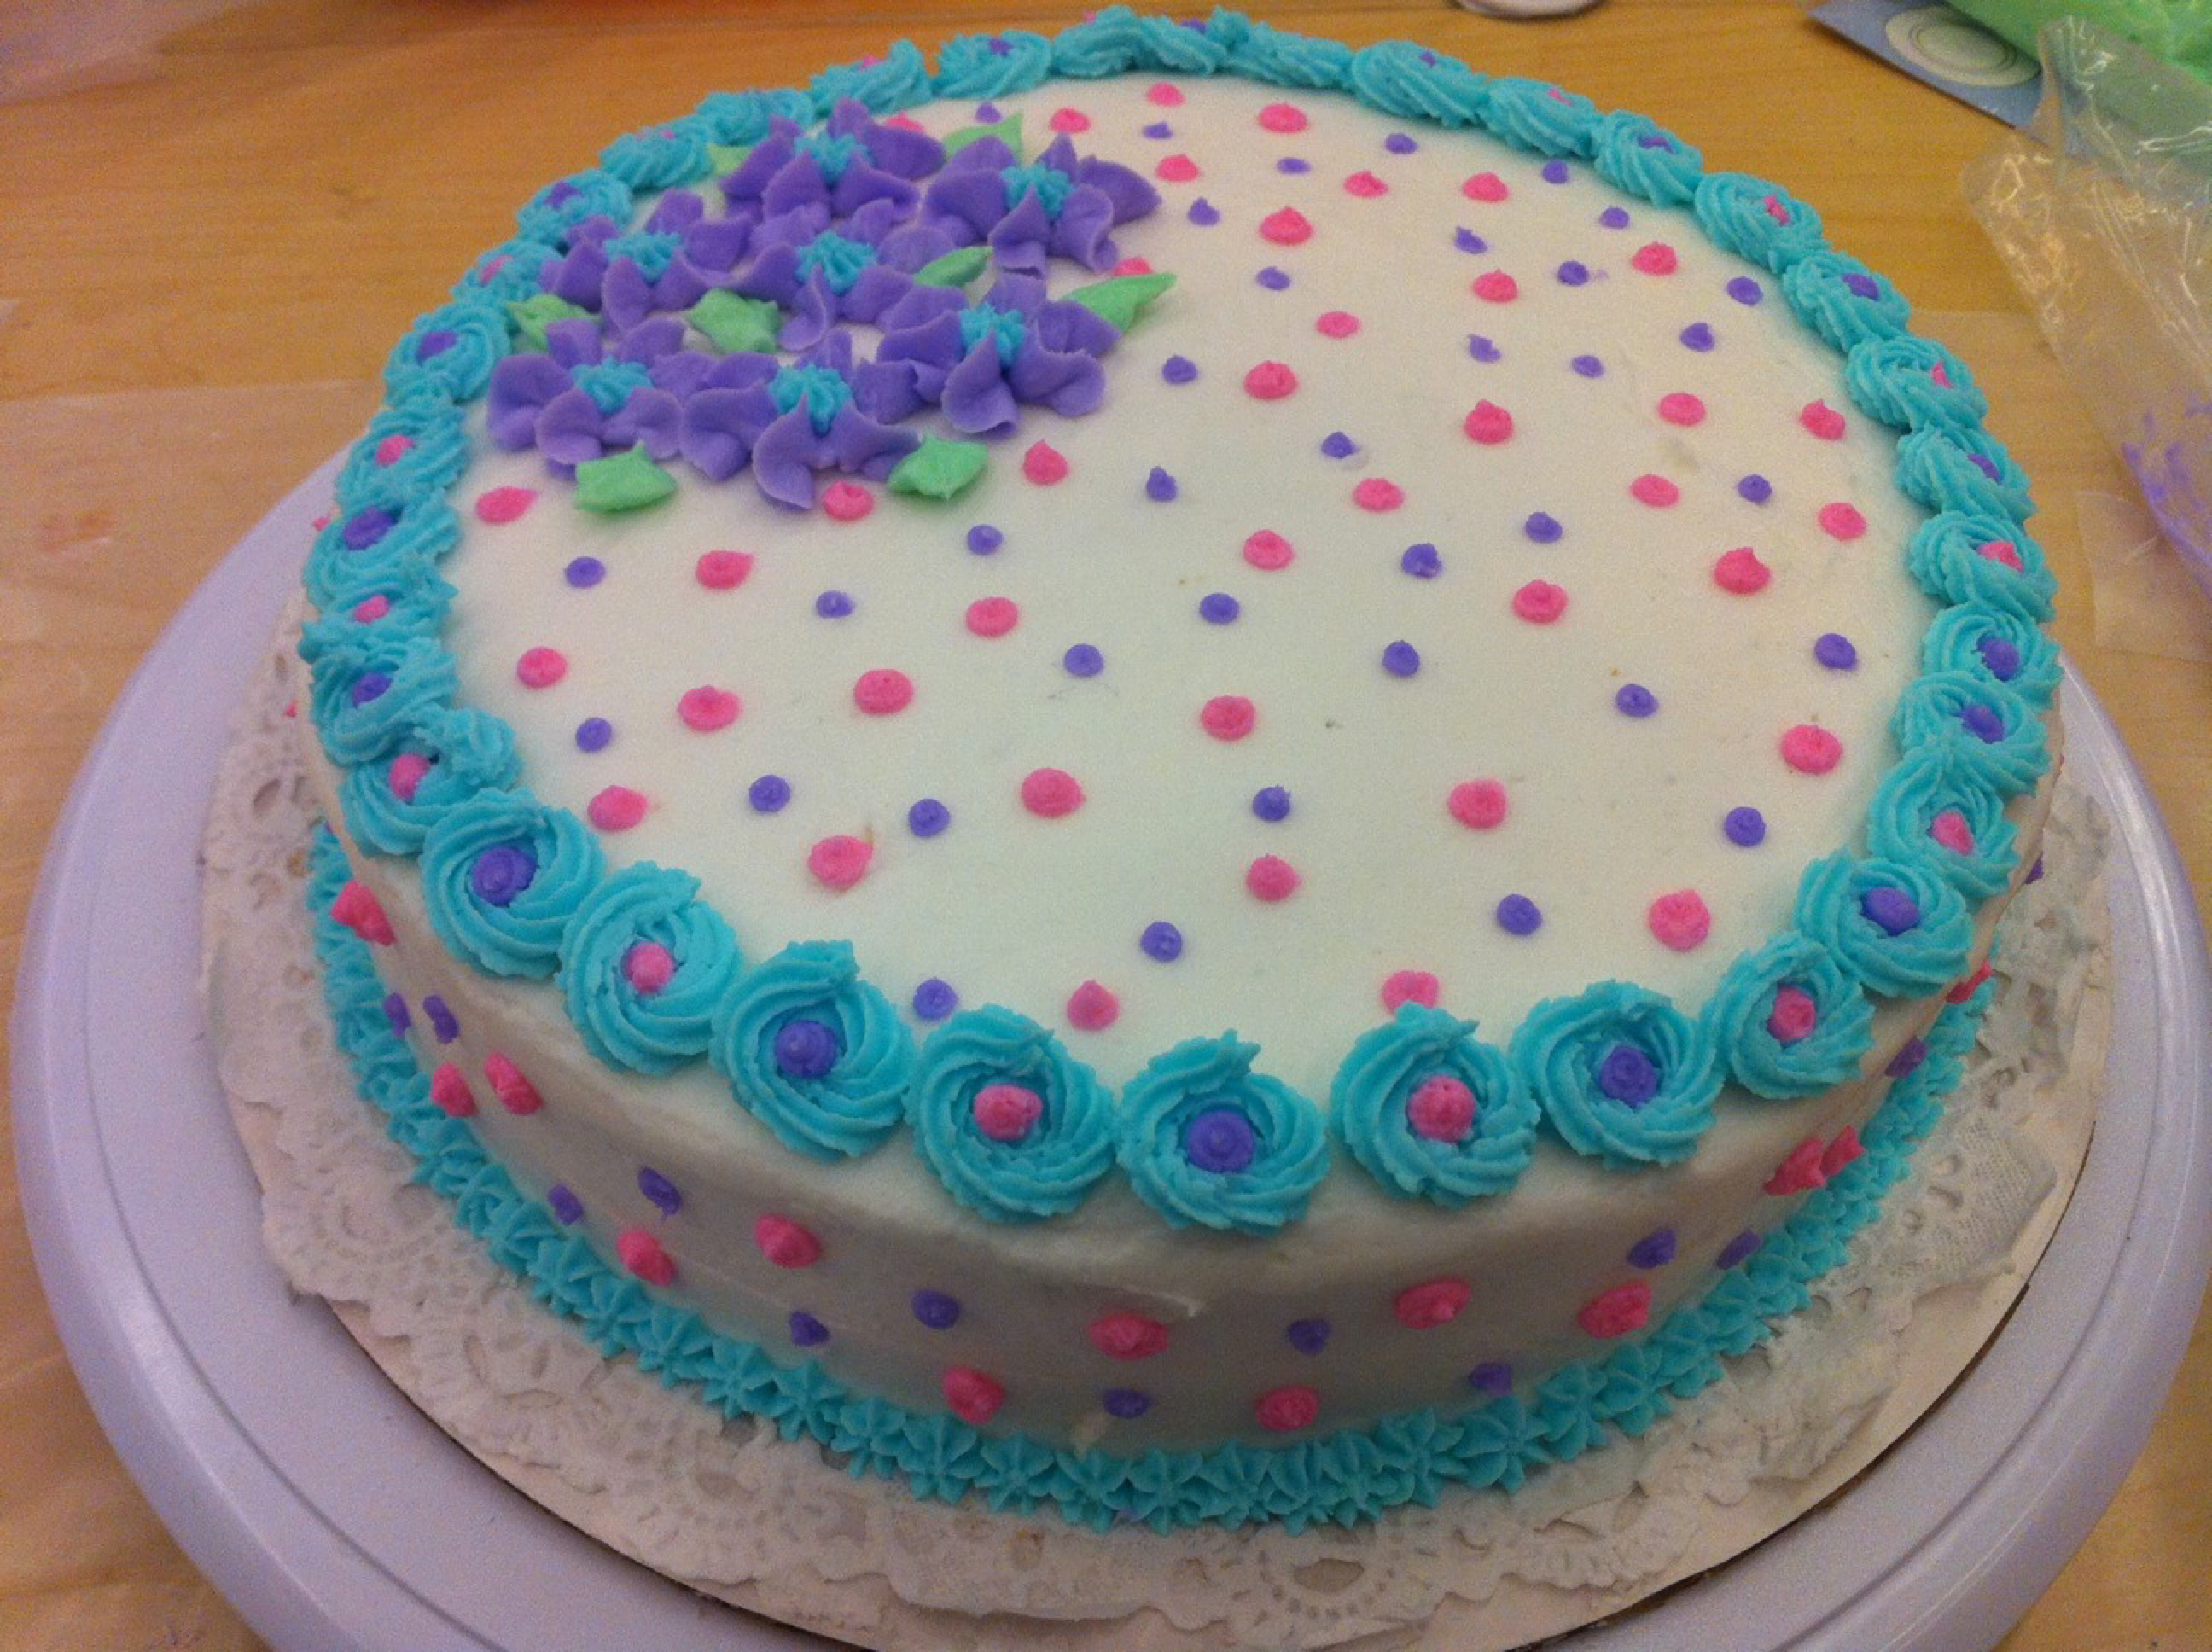 6 10 Decorated Cakes Photo Cakes Decorated with Buttercream